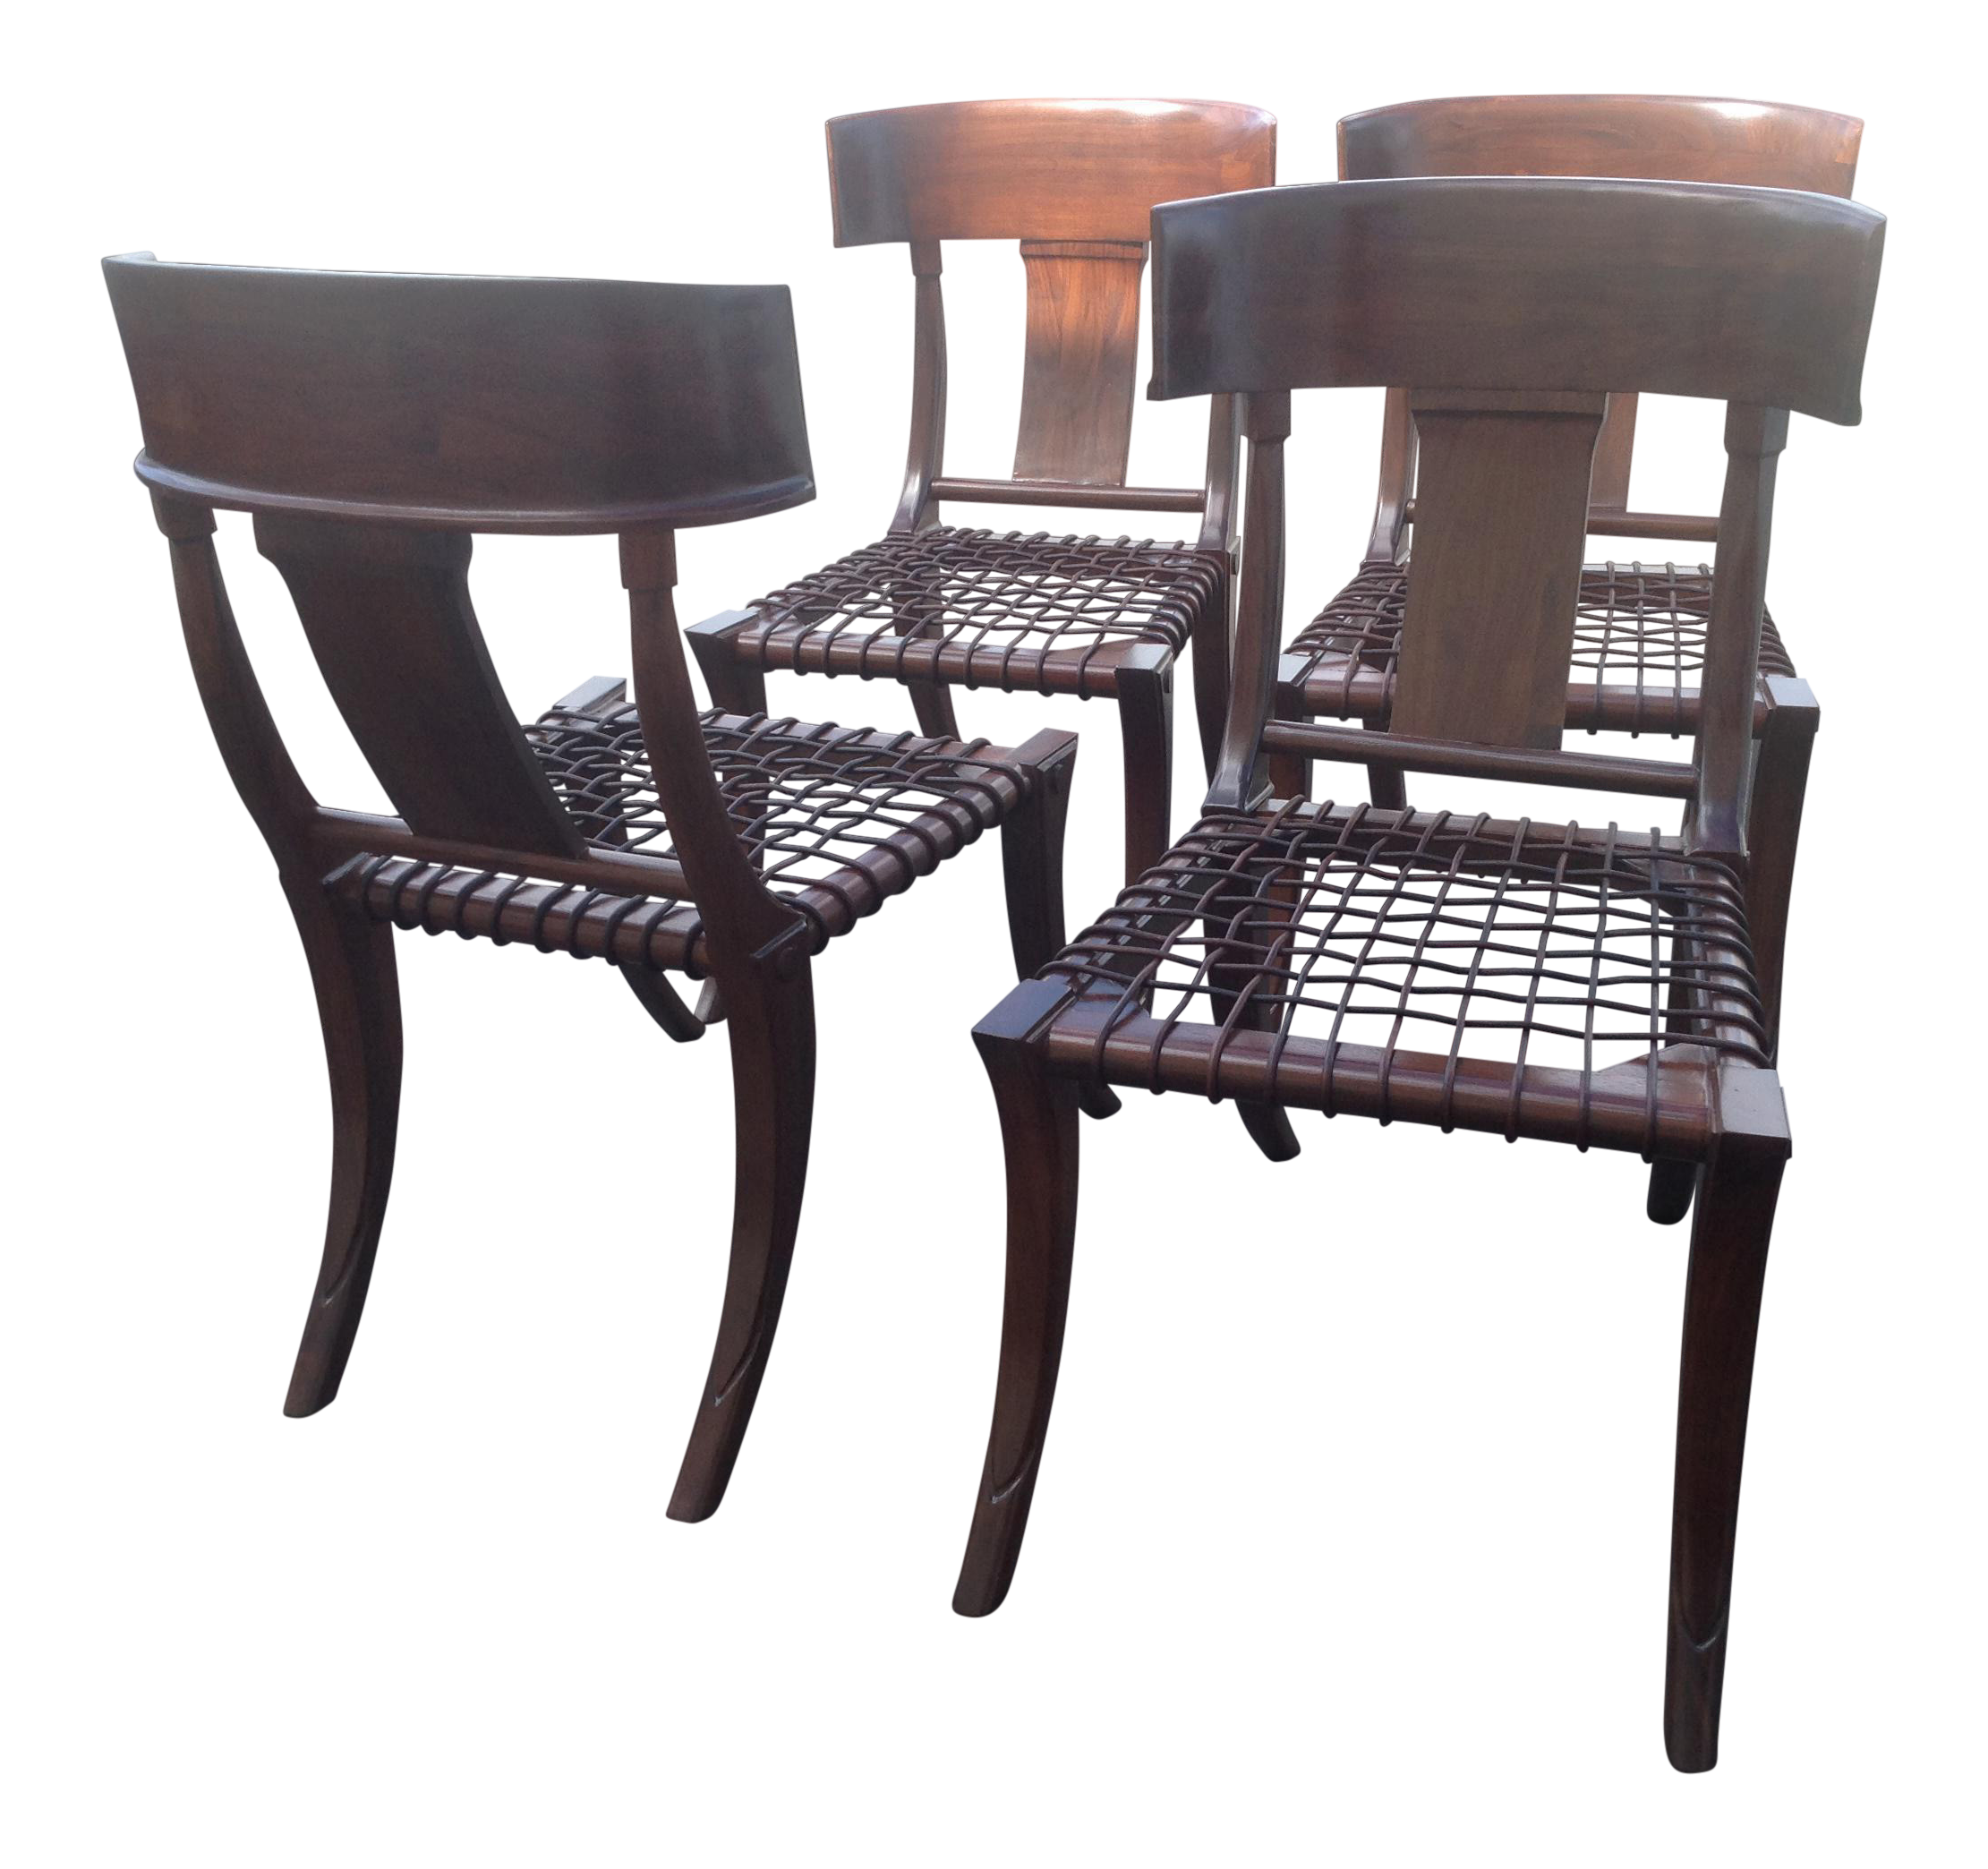 Vintage furniture images Rustic Modern Mid Century Klismos Style Walnut Dining Chairs set Of Royal Design Studio Stencils Vintage Used Furniture For Sale Chairish